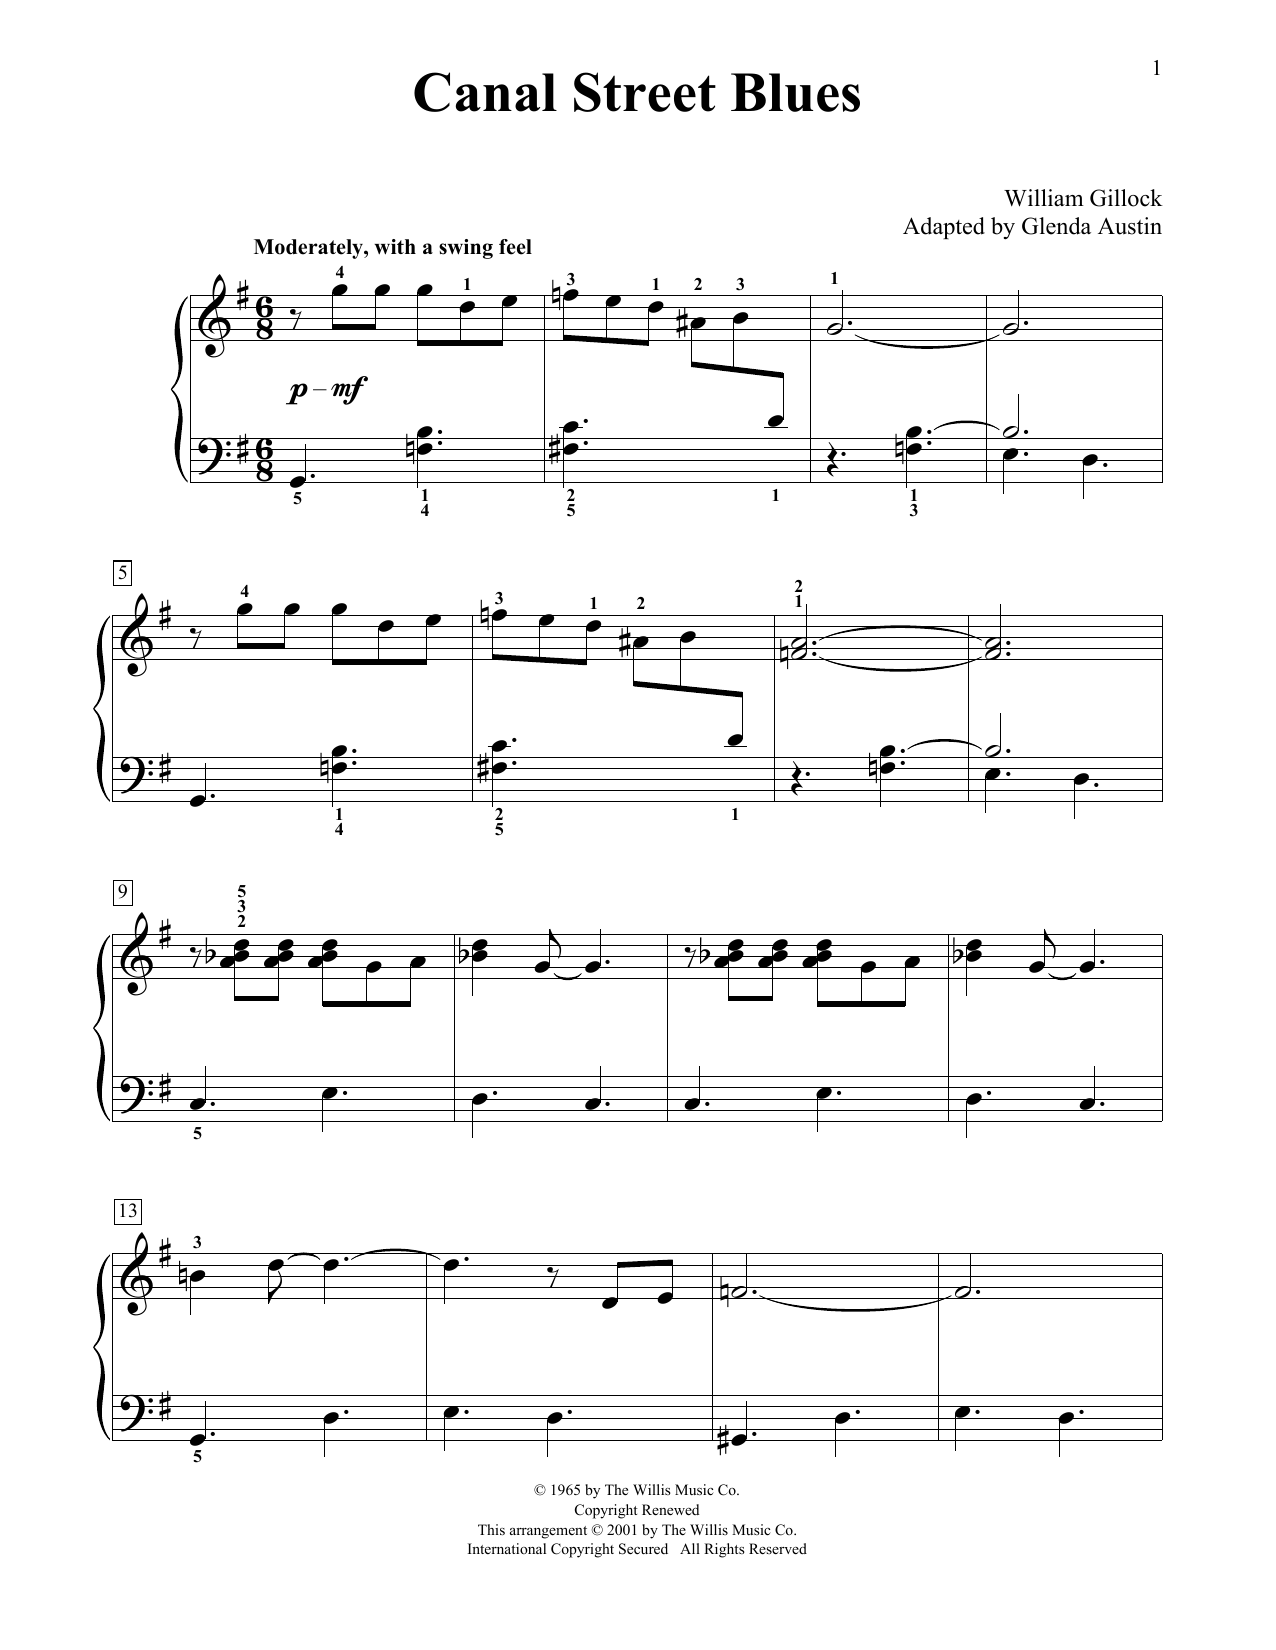 William Gillock Canal Street Blues (Simplified) (adapted by Glenda Austin) sheet music notes printable PDF score